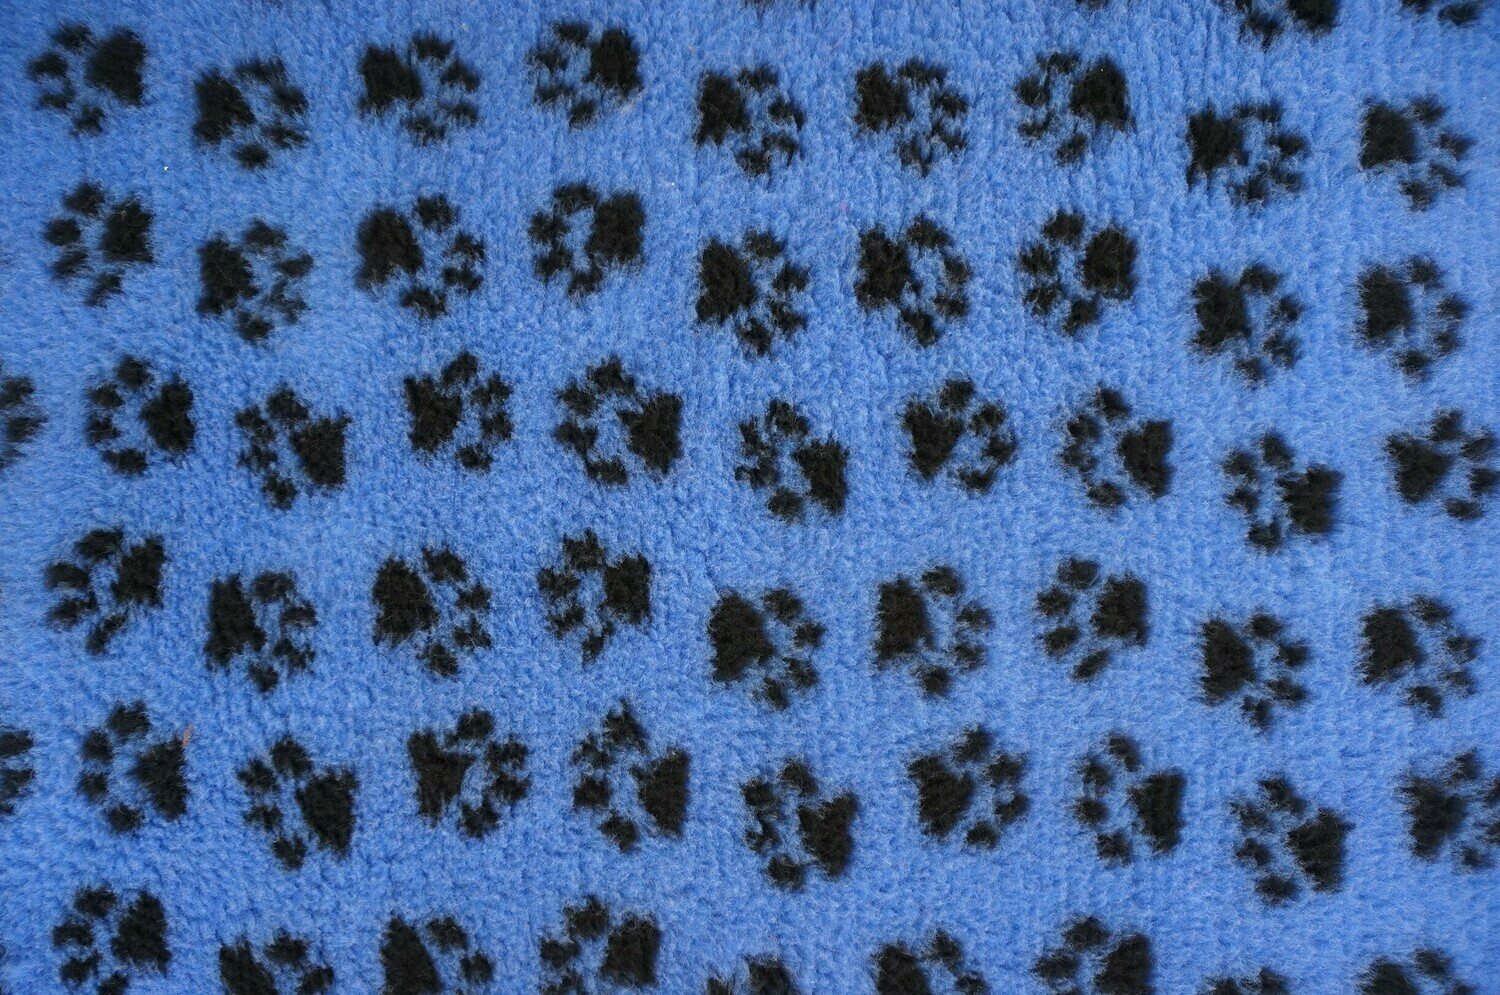 {Single Sheet} : End of Roll Ultra Premium - Non Slip Backing :  Royal Blue with Black Paws - Size : 150cm x 90cm - At a Price to suit all - Ref : (6329)